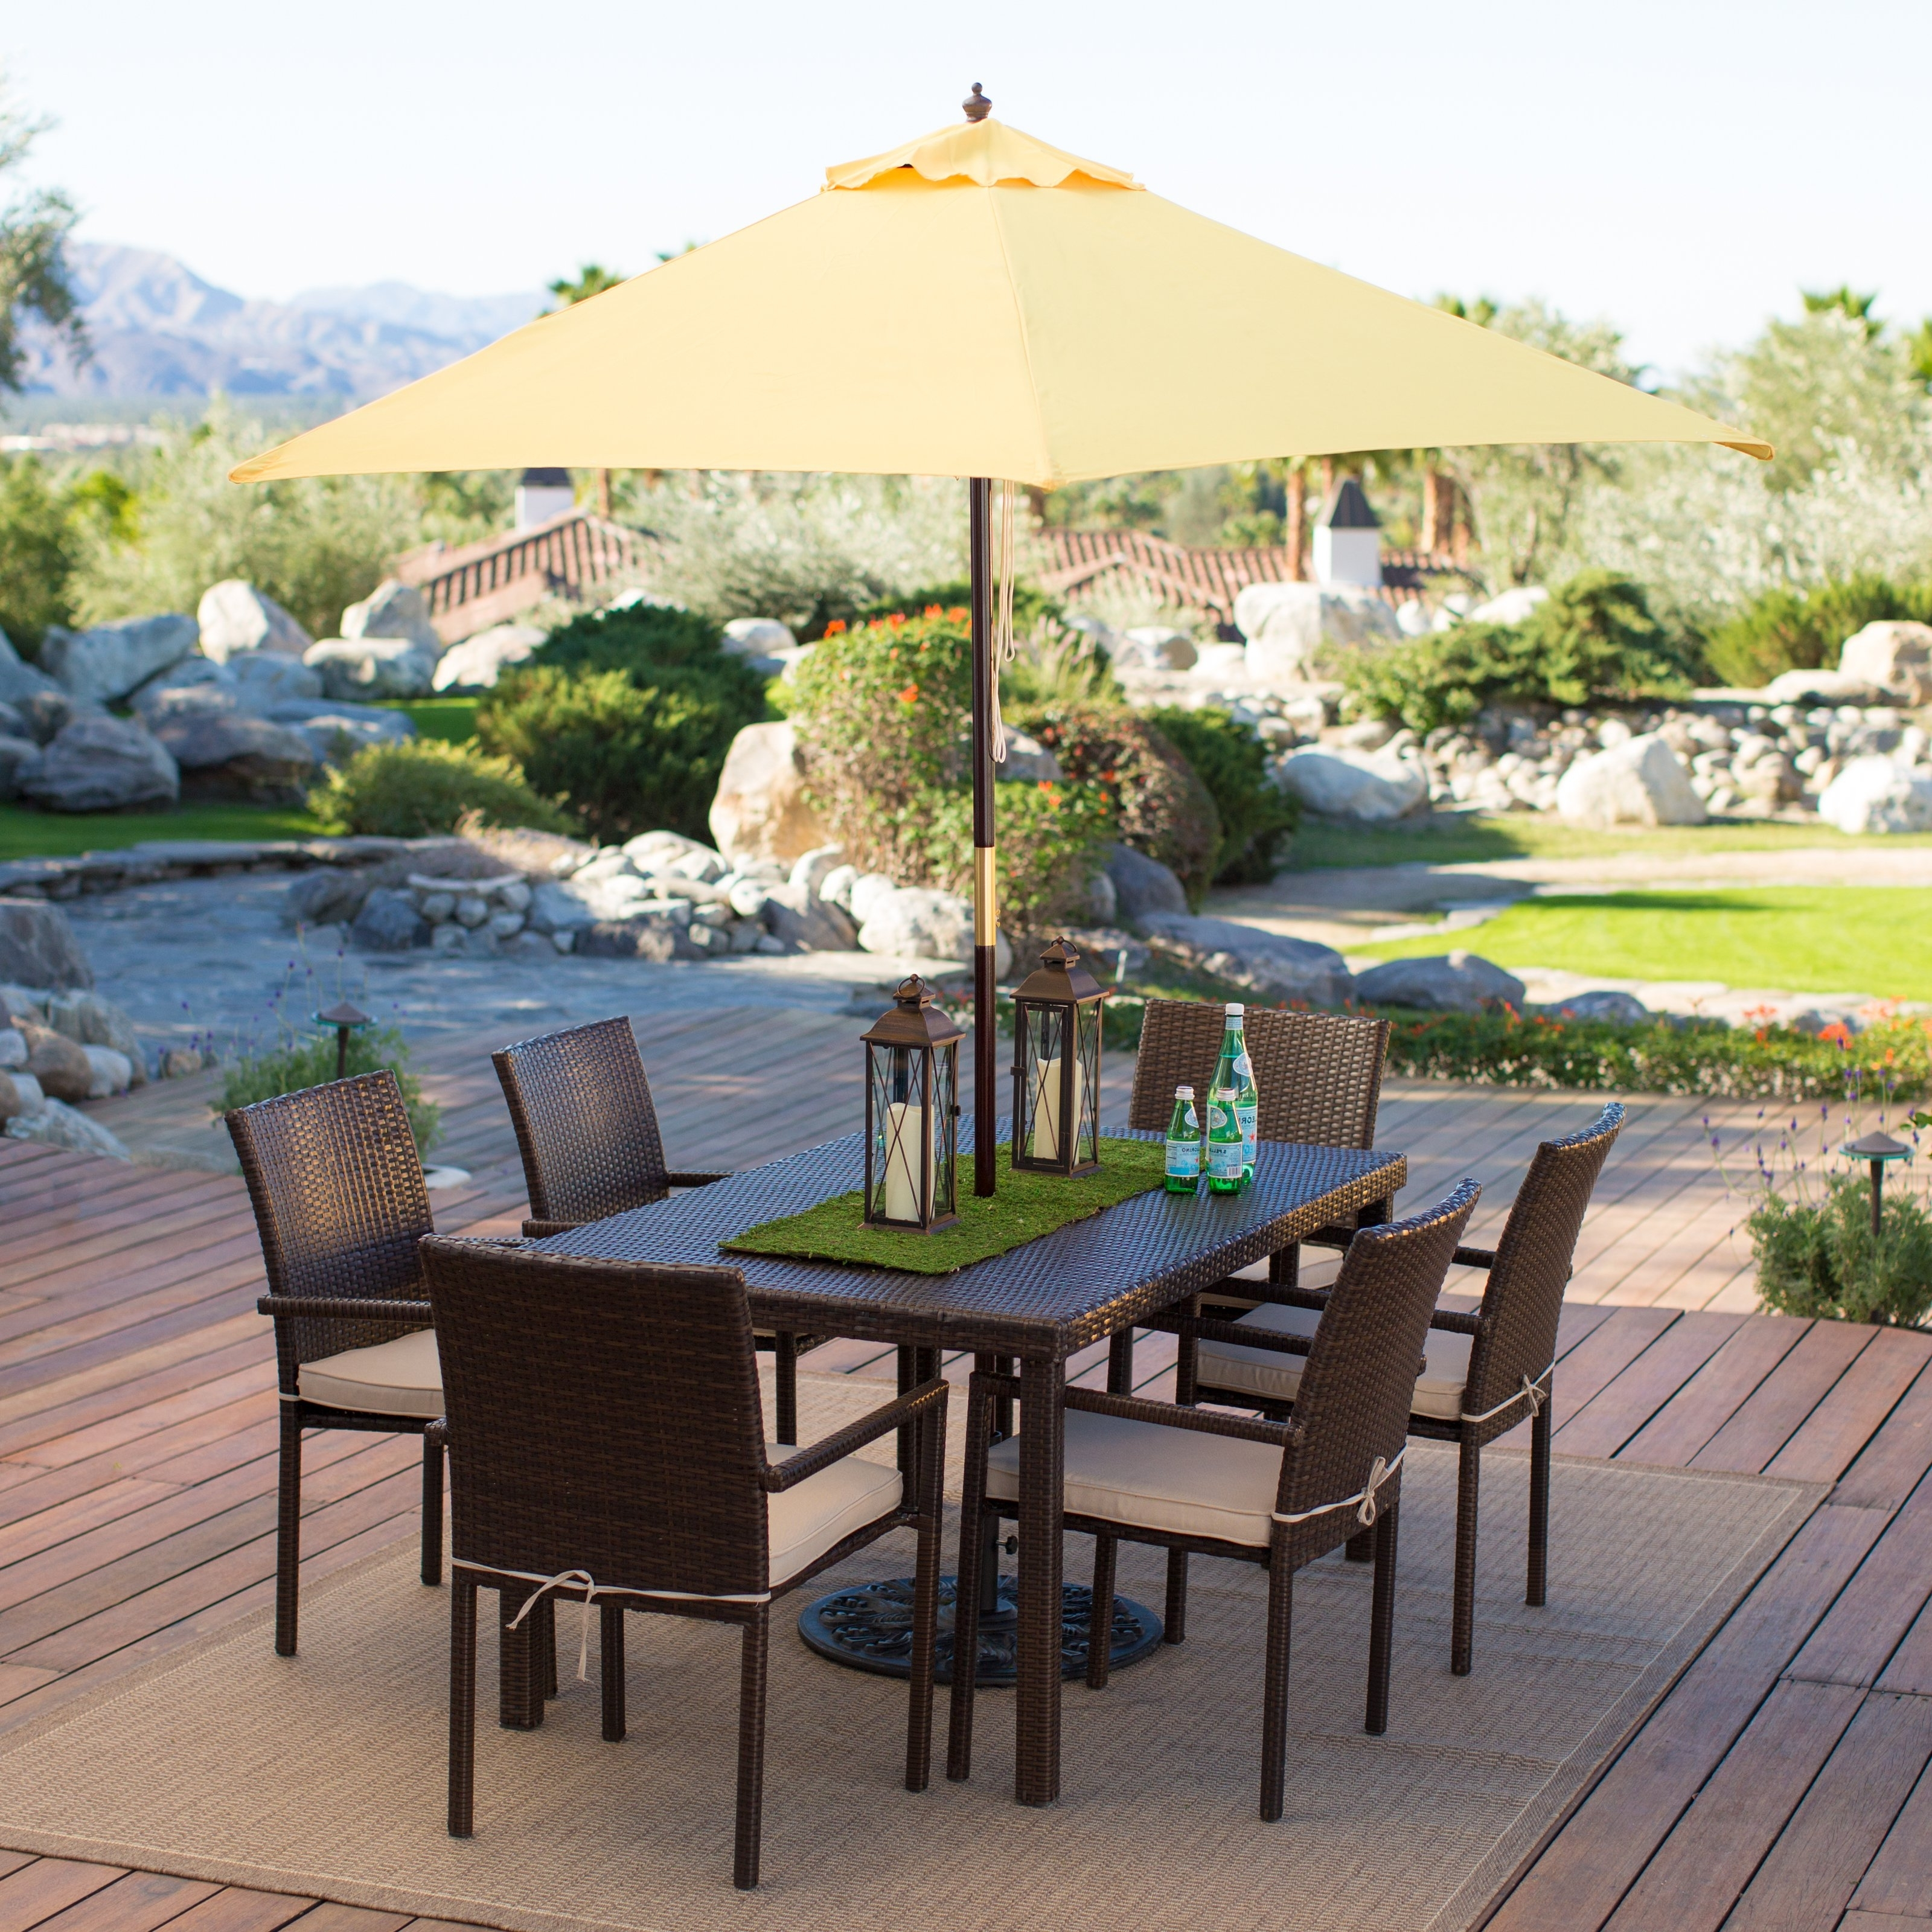 Most Recent Giant Patio Umbrellas Within Garden: Enchanting Outdoor Patio Decor Ideas With Patio Umbrellas (View 14 of 20)